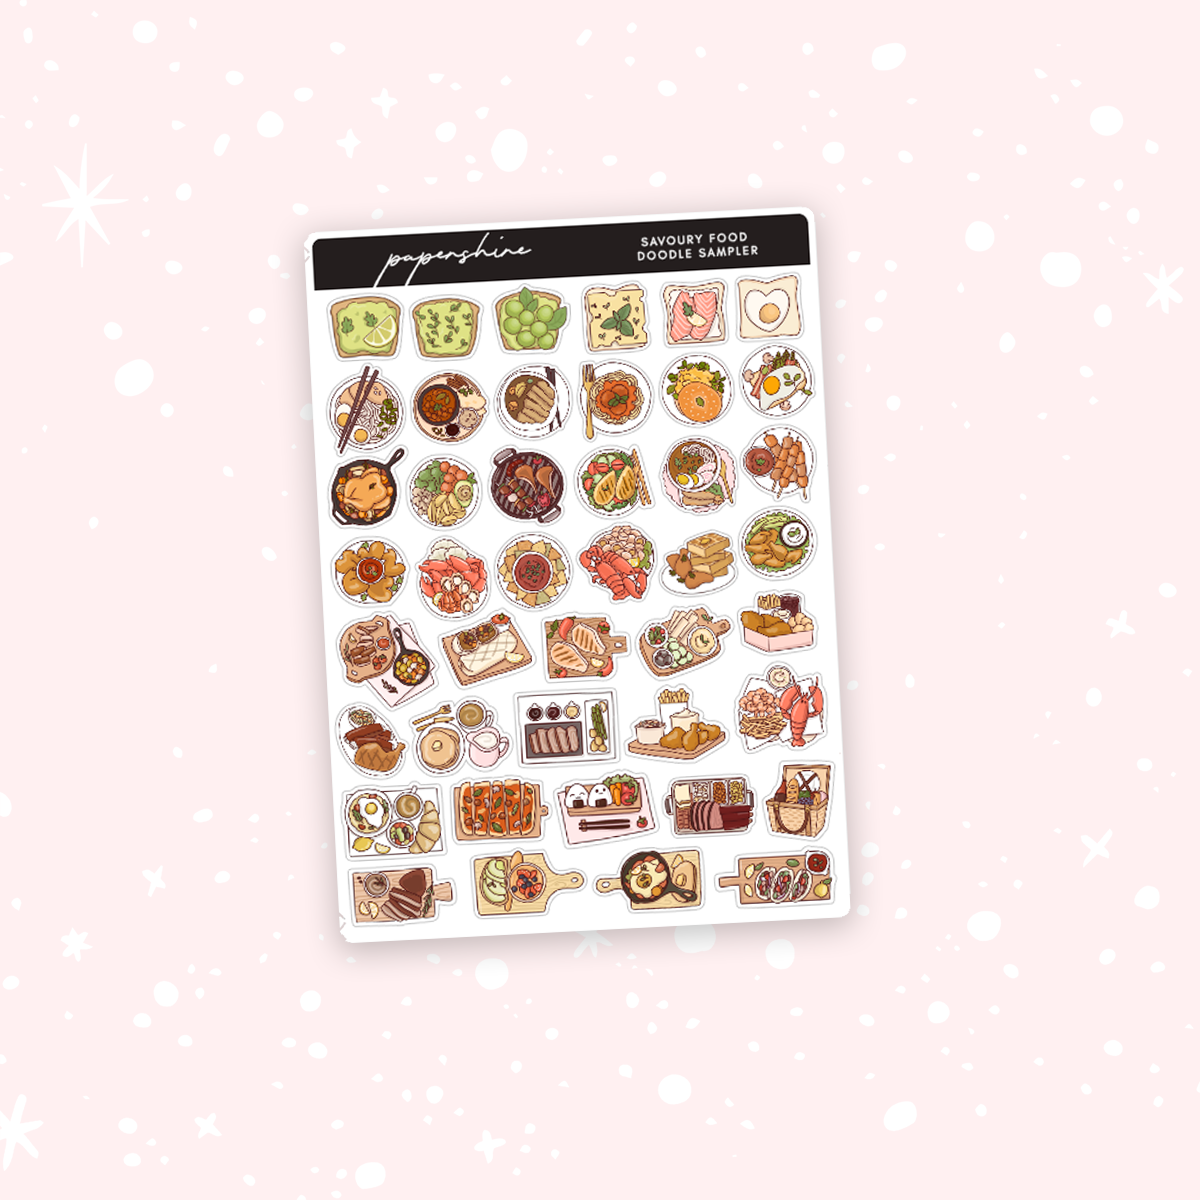 Savoury Food Sampler Stickers